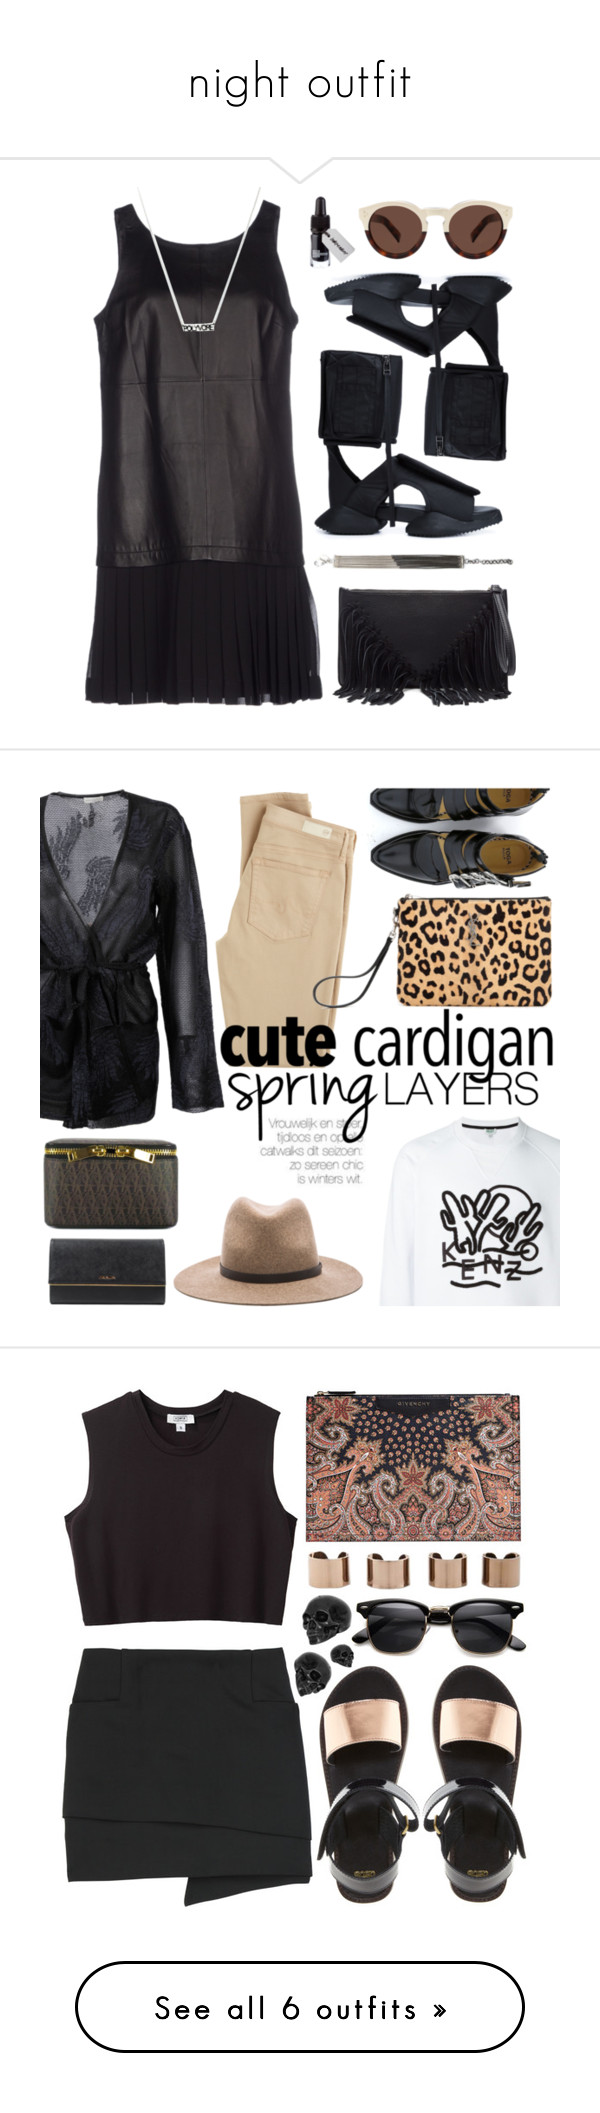 """""""night outfit"""" by amanda-uccellini ❤ liked on Polyvore featuring Elizabeth and James, Rick Owens, Iosselliani, Illesteva, Sole Society, contestentry, styleinsider, PVStyleInsiderContest, Dries Van Noten and AG Adriano Goldschmied"""